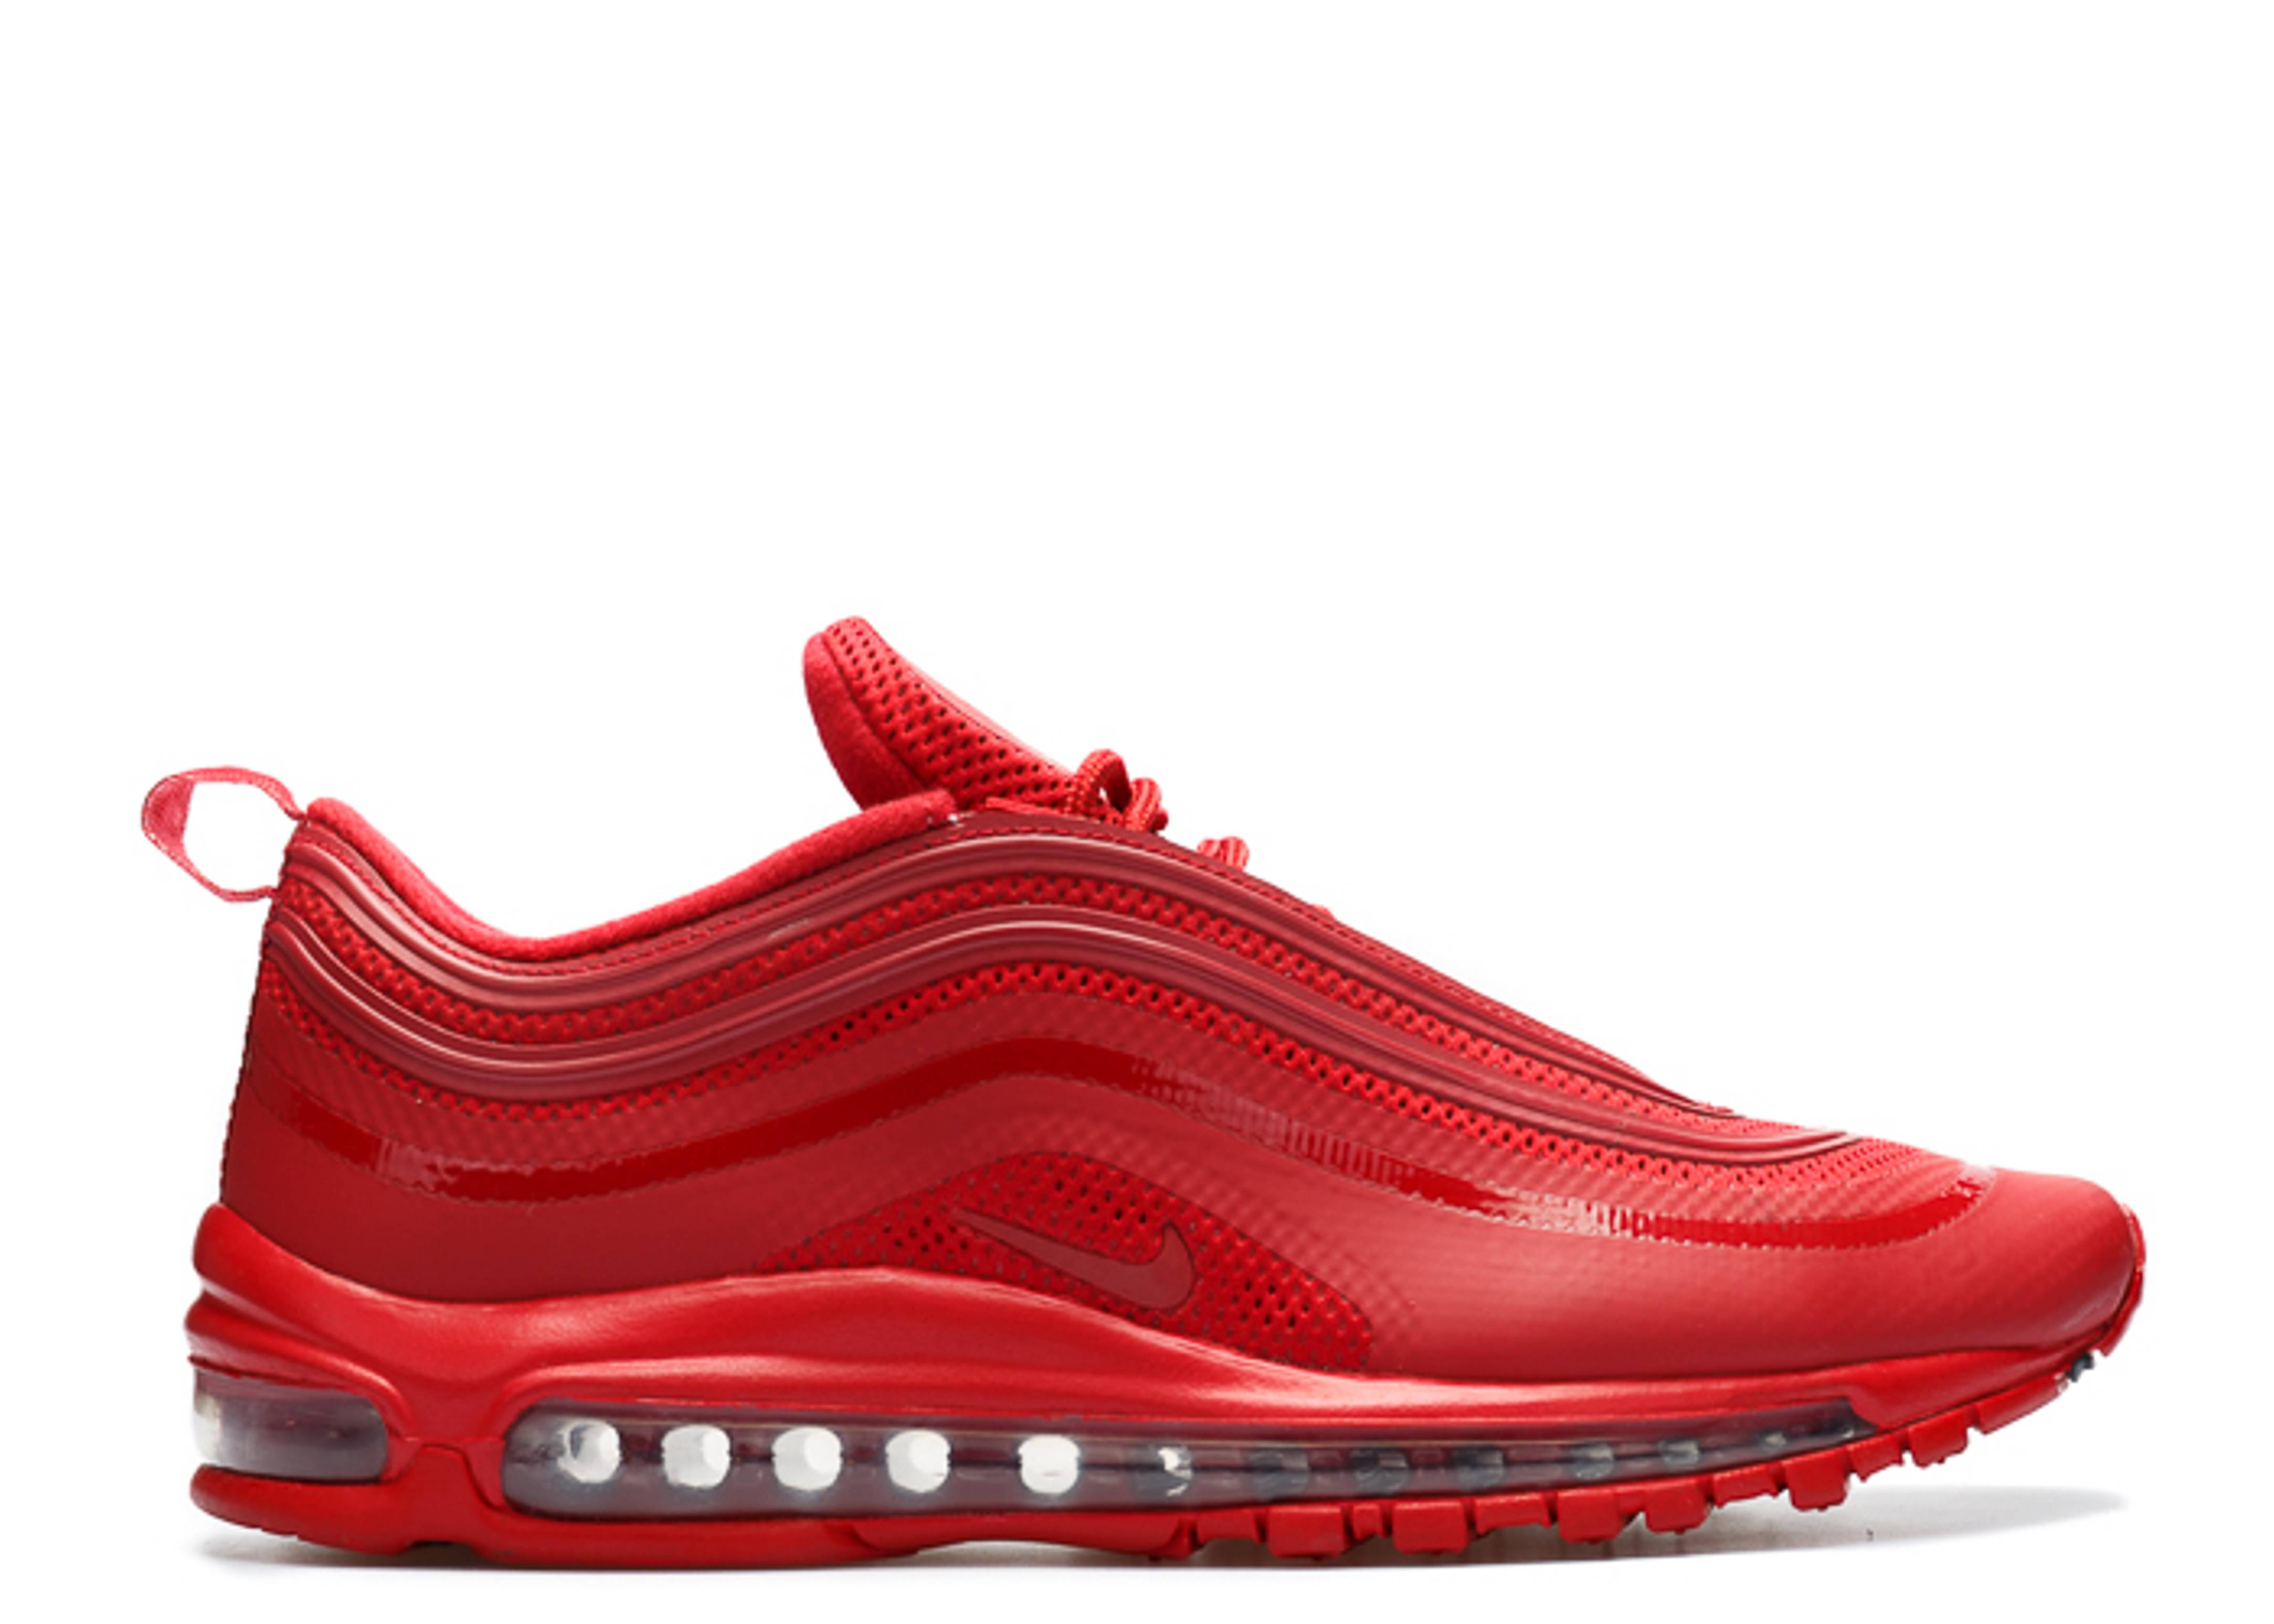 Air Max 97 Hyperfuse - Nike - 518160 661 - gym red gym red-black-ntrl gry  d5c5928a5